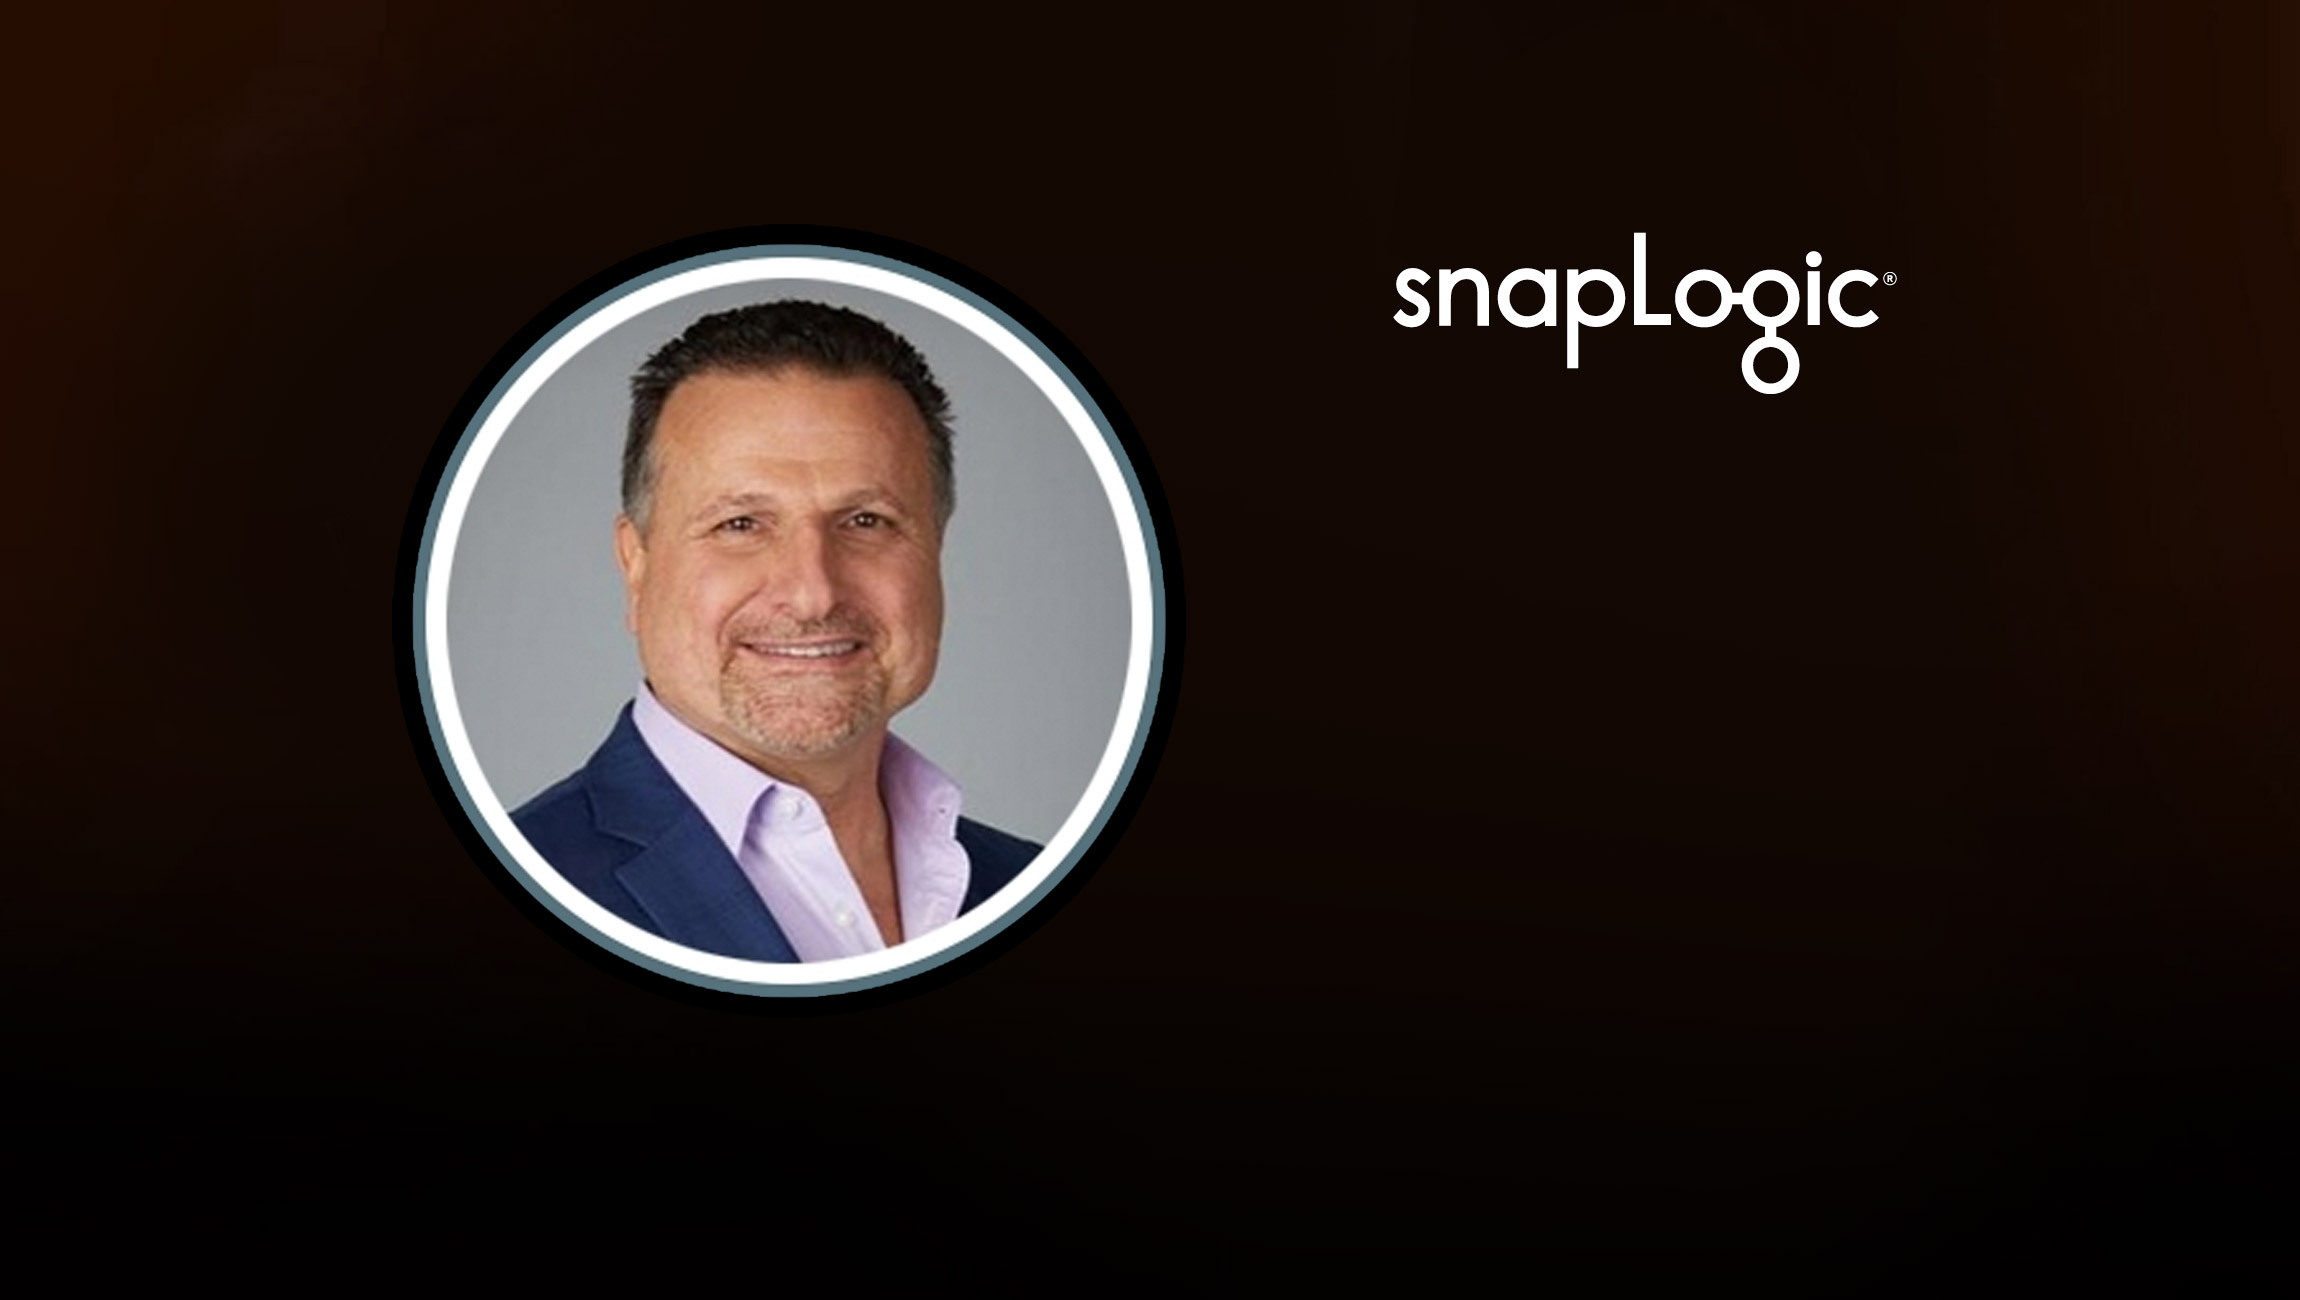 SnapLogic Appoints George Mogannam as Chief Revenue Officer